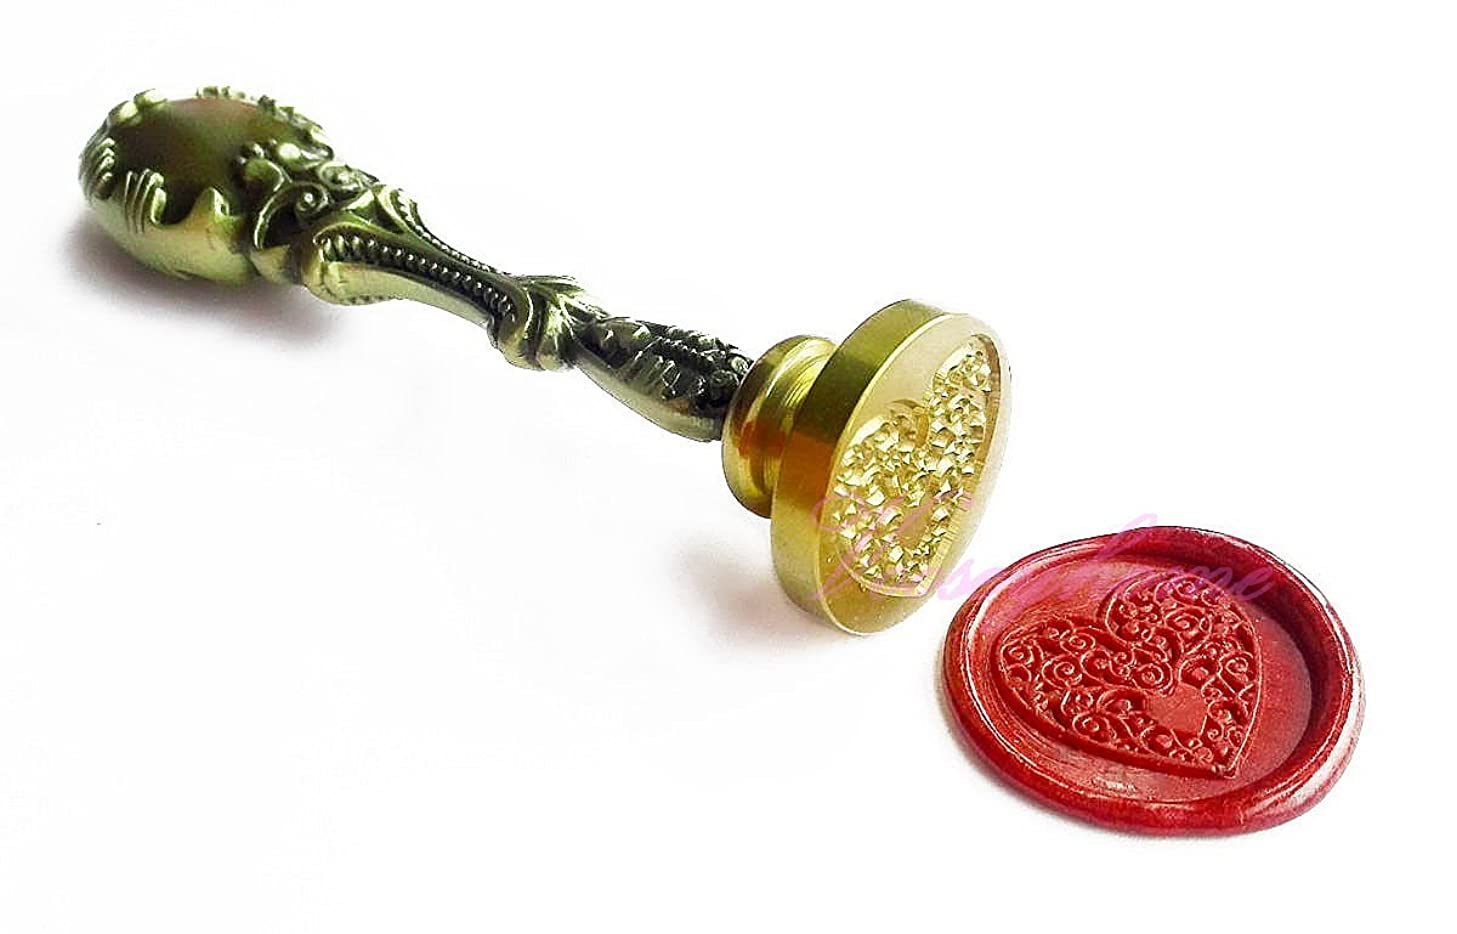 Vooseyhome The Heart Wax Seal Stamp with Vintage Brass Metal Handle - Ideal Decoration on Gift Packing, Birthday Parties, Wedding Invitations, Envelope Sealers, Letters, Posters, etc